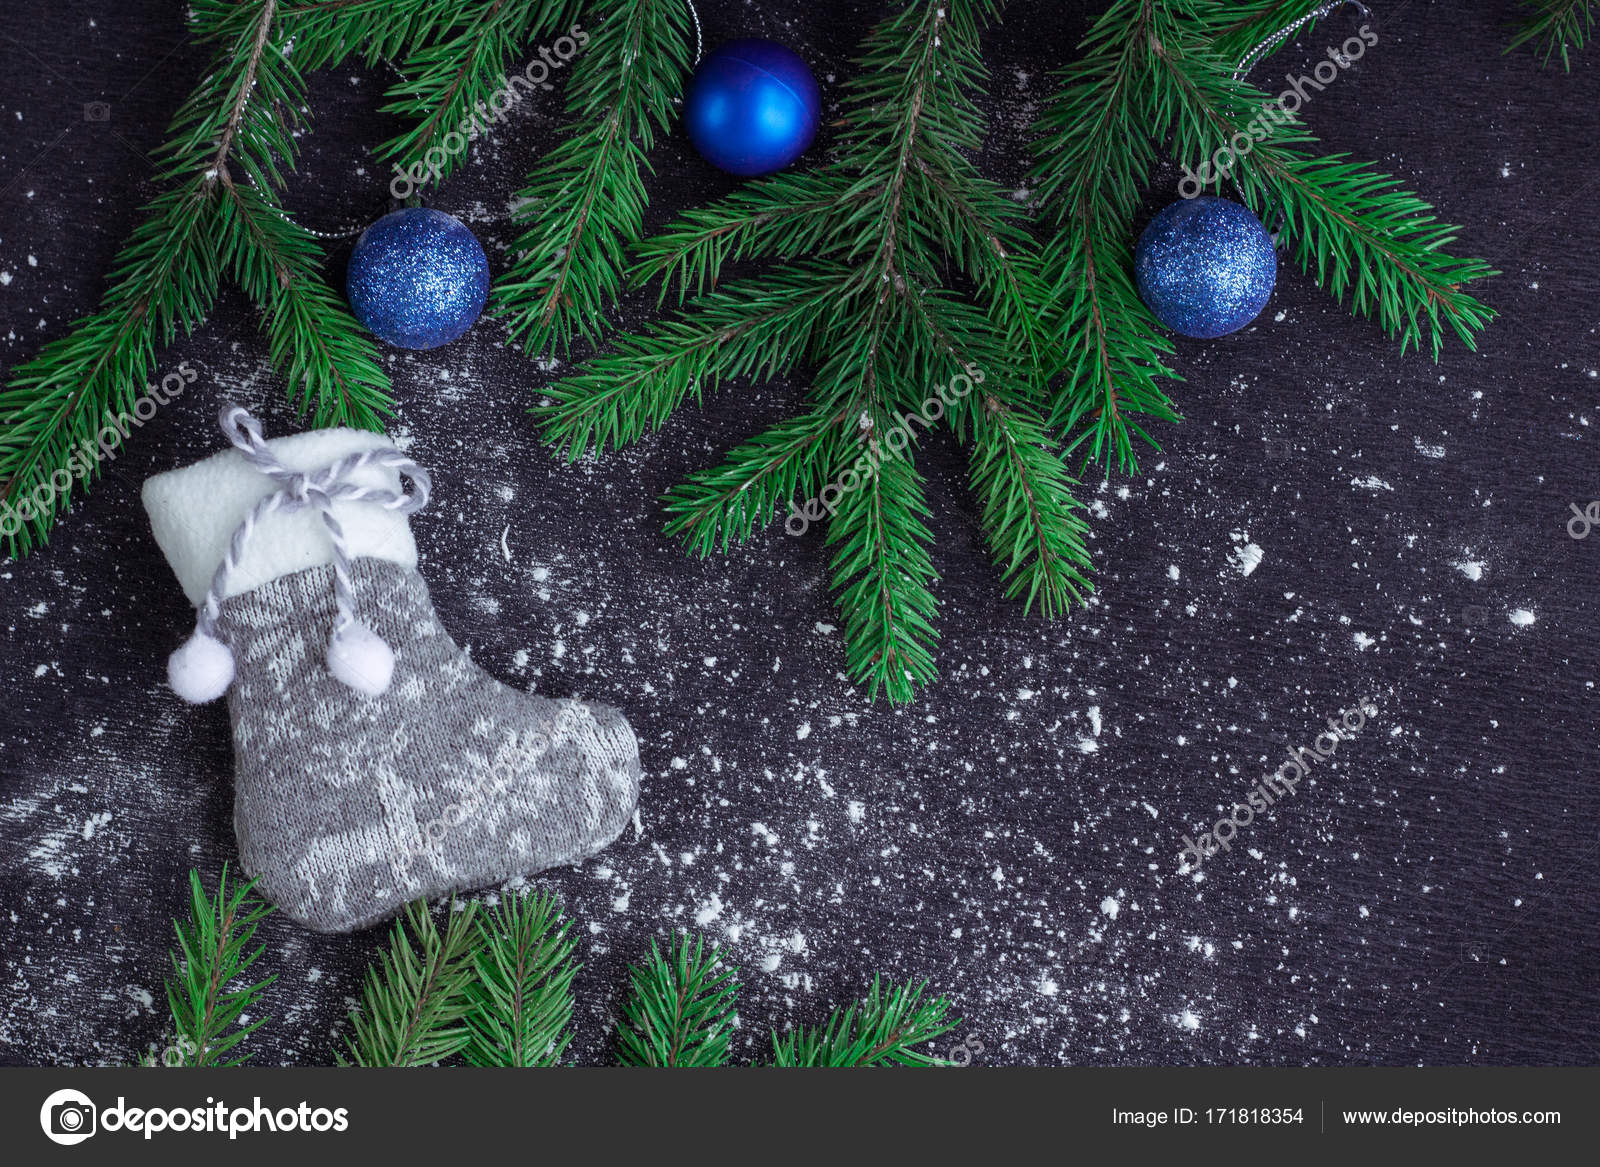 christmas and new year winter holiday snowbound composition of grey stocking on black space background with green fir tree branches and blue balls ornament - Blue Grey Christmas Decorations